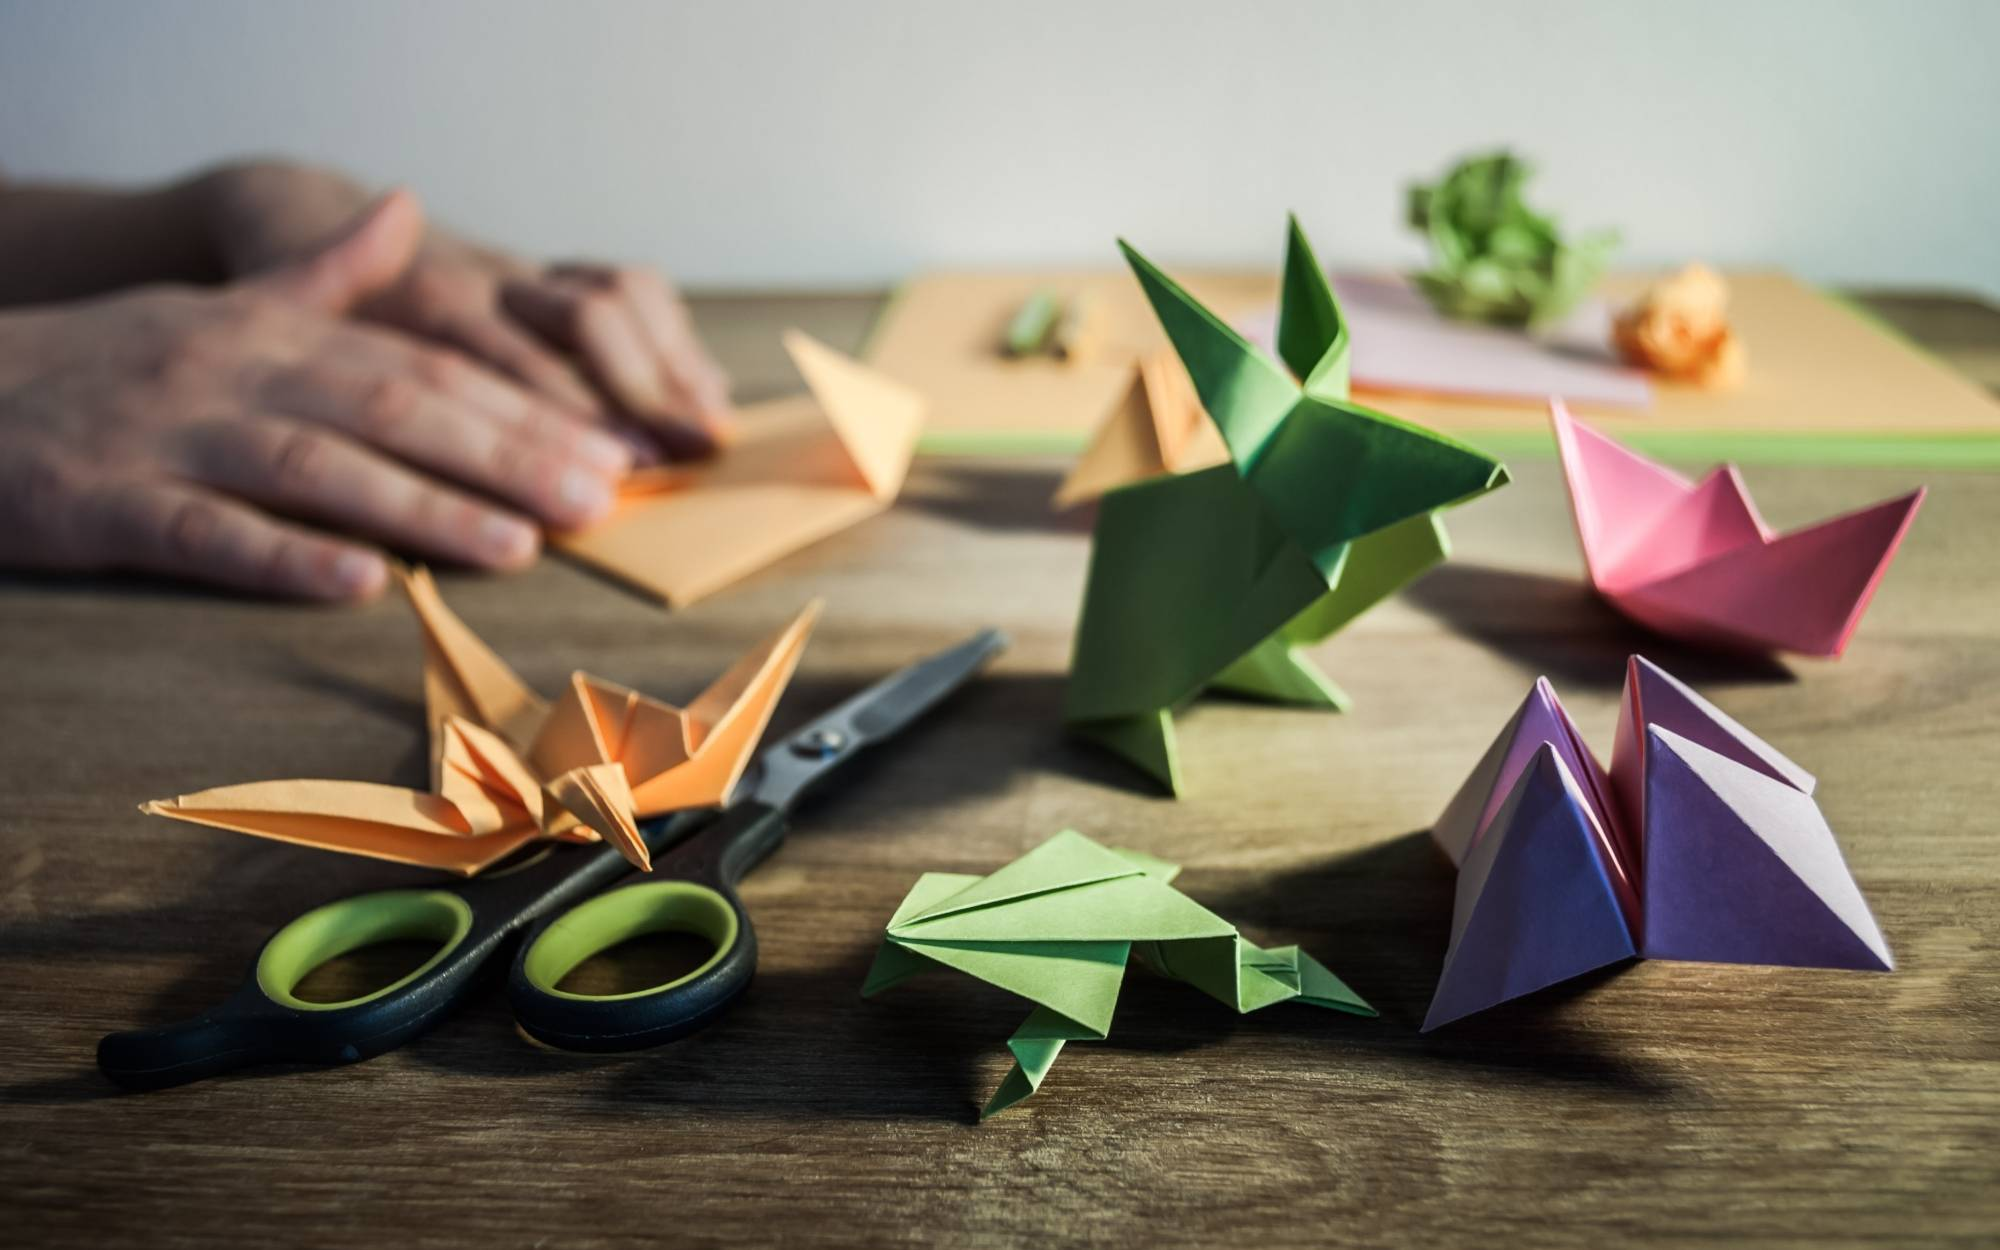 Image of assorted origami